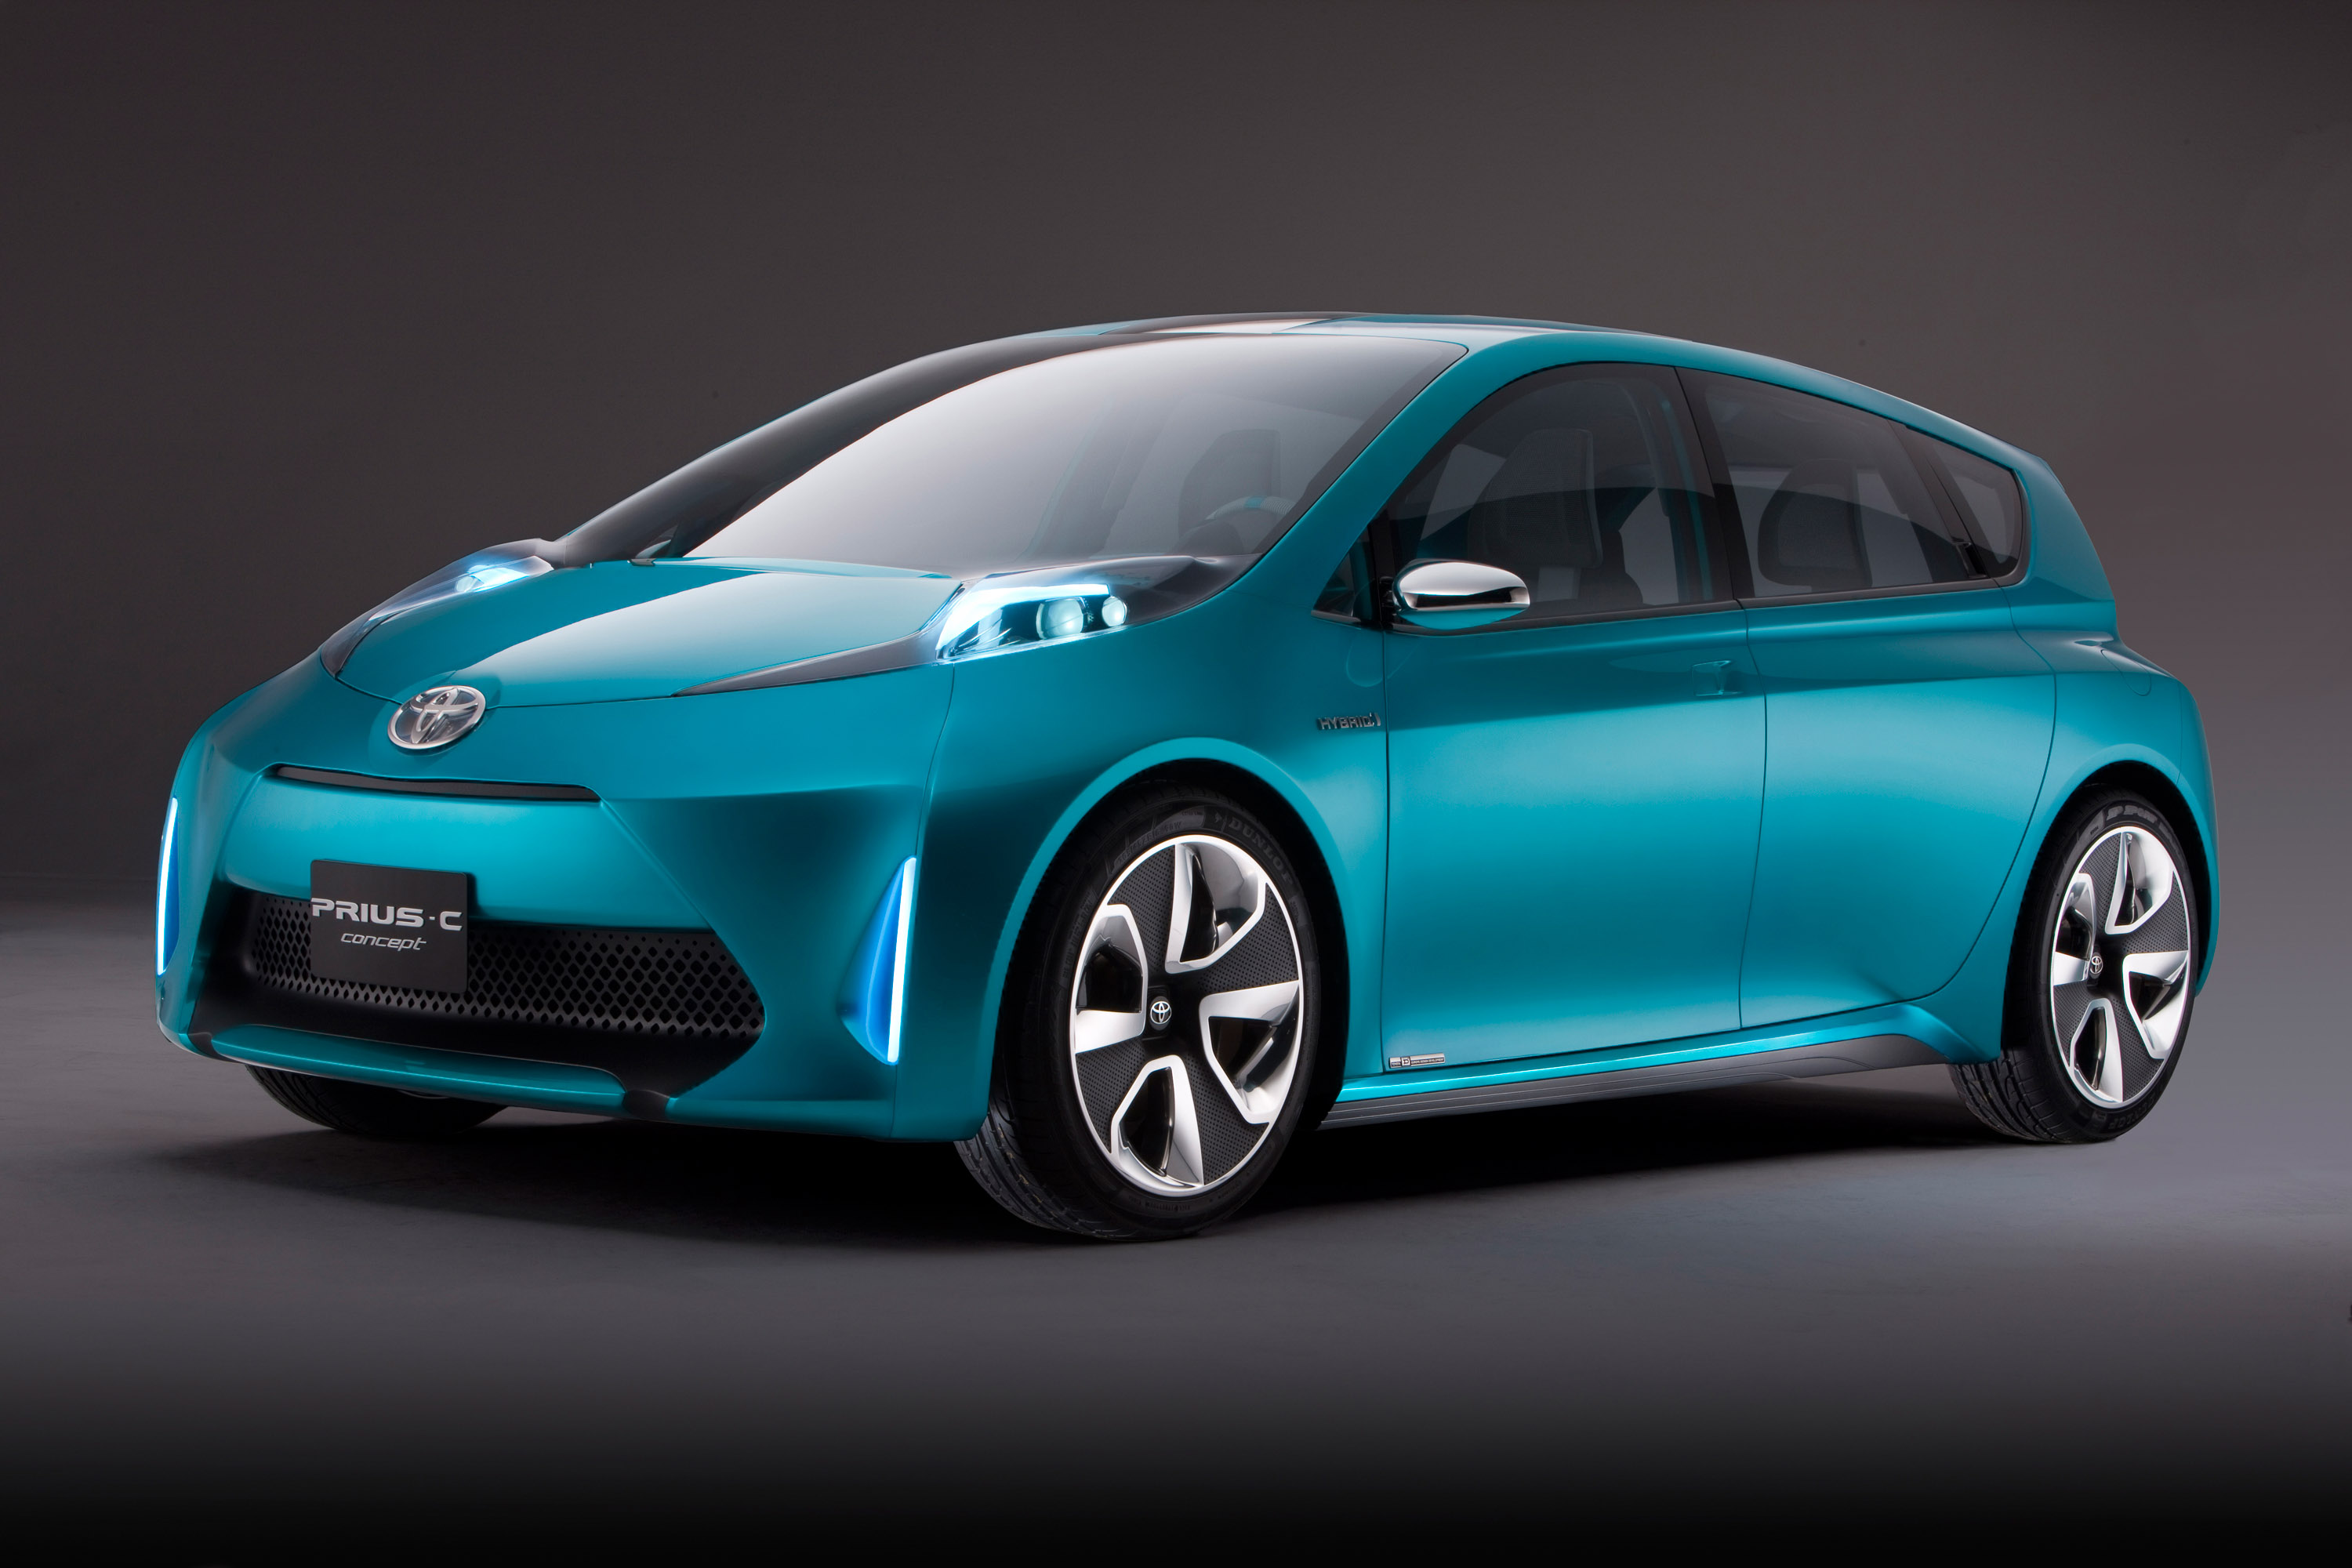 Toyota Prius Concept Cars HD Wallpapers